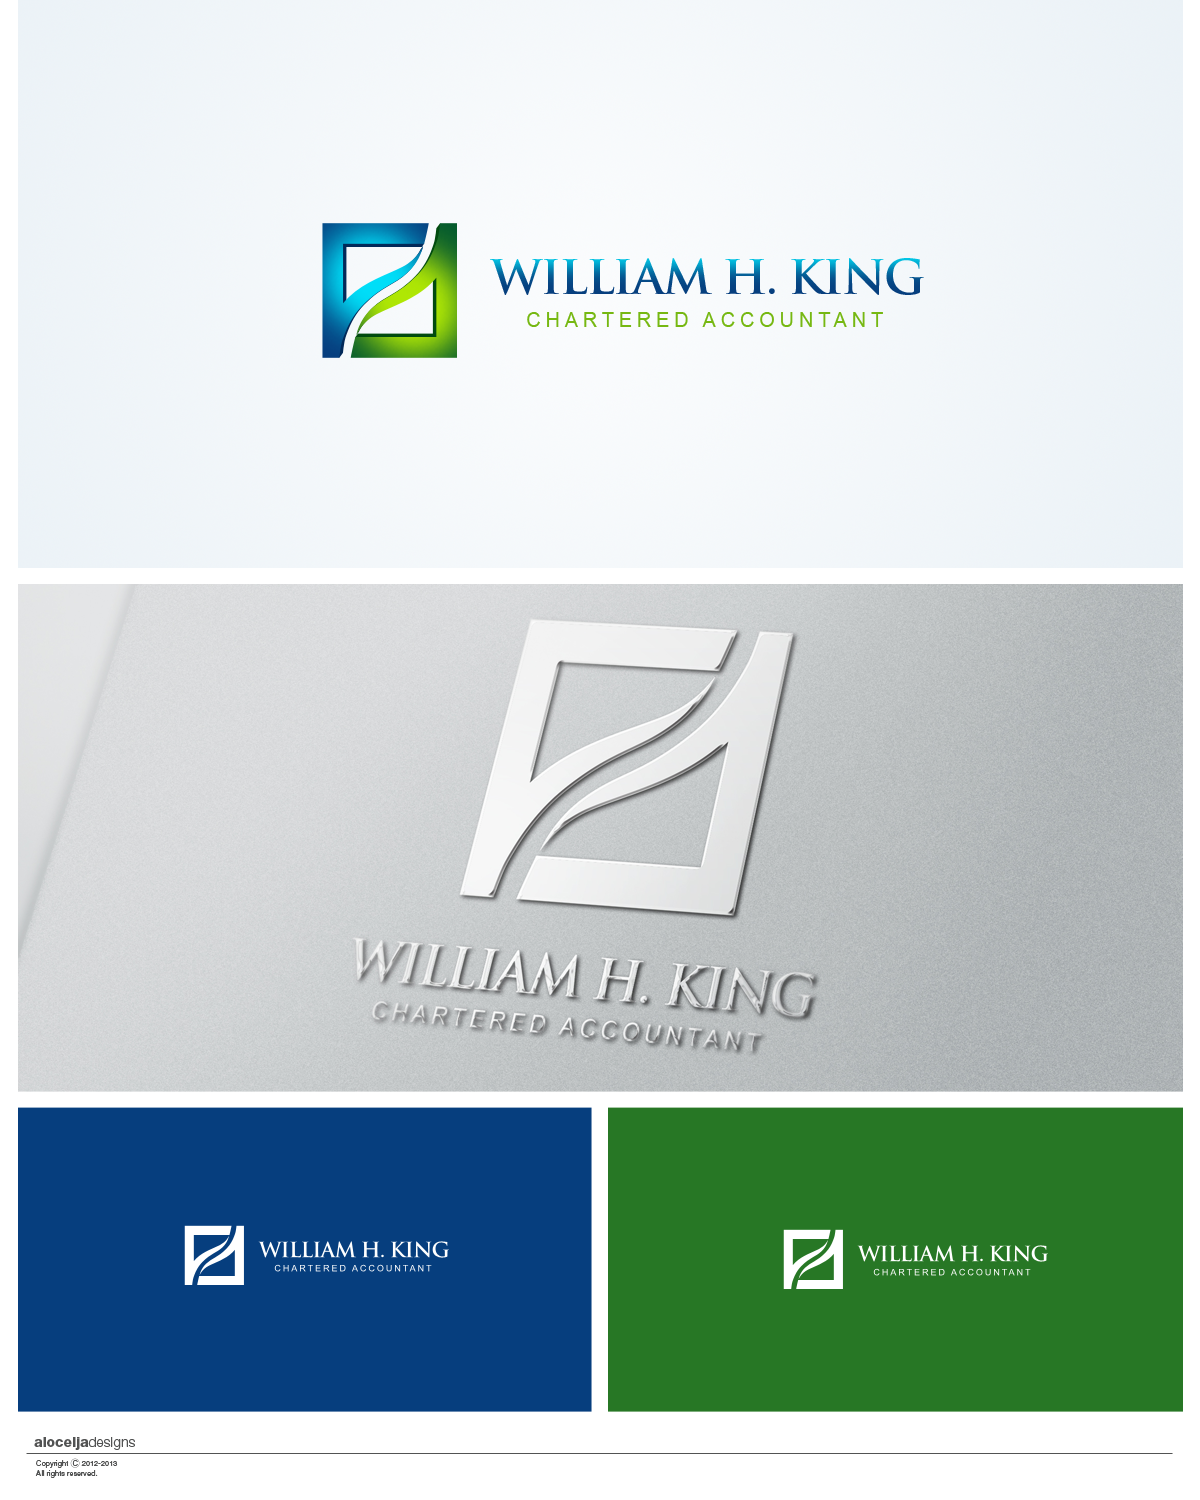 Logo Design by alocelja - Entry No. 193 in the Logo Design Contest New Logo Design for William H. King, Chartered Accountant.